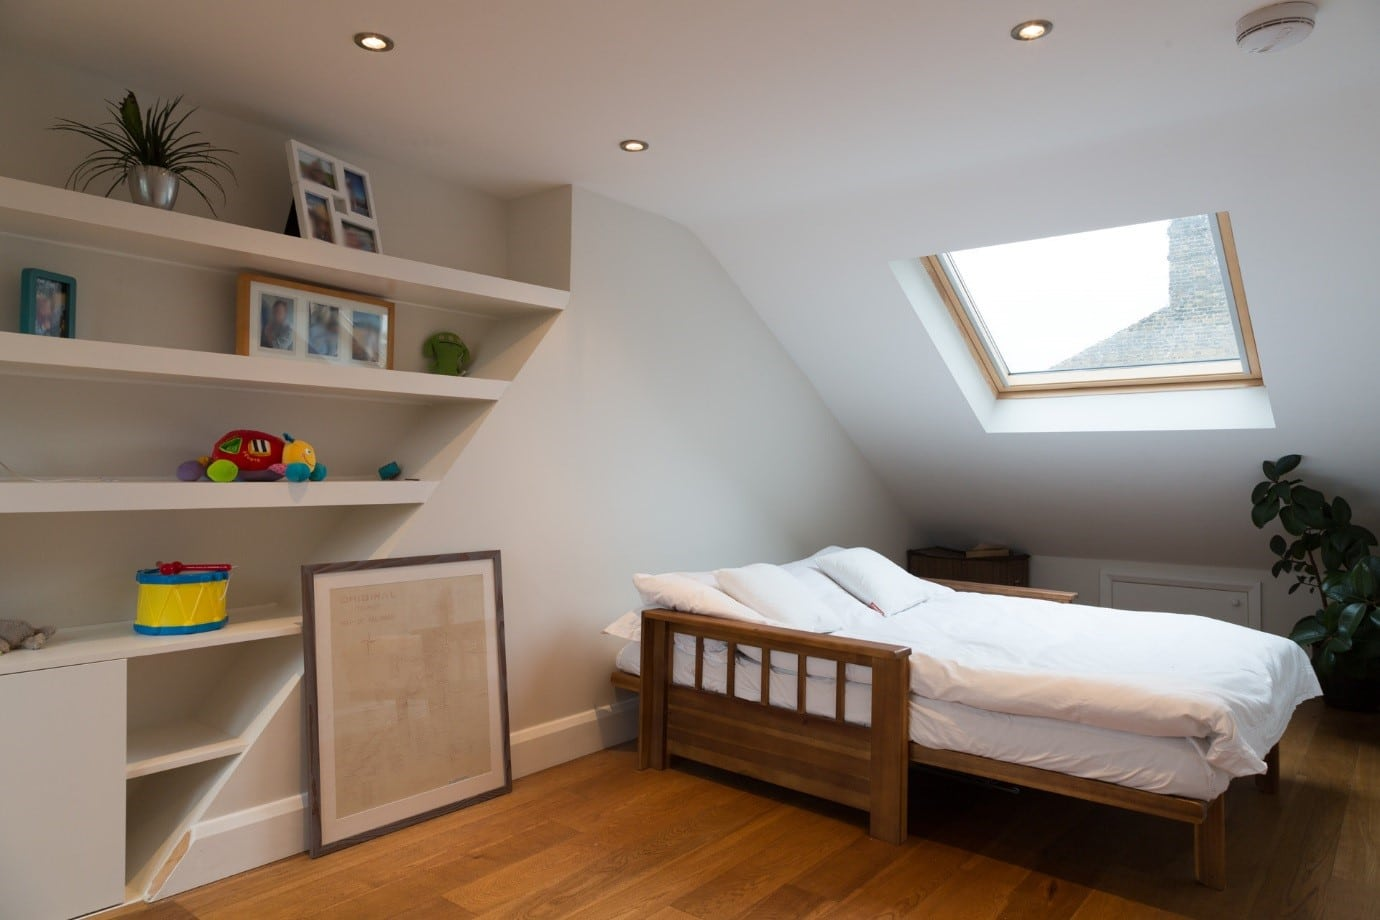 Dormer loft conversion ideas loft conversion information for Bedroom ideas uk